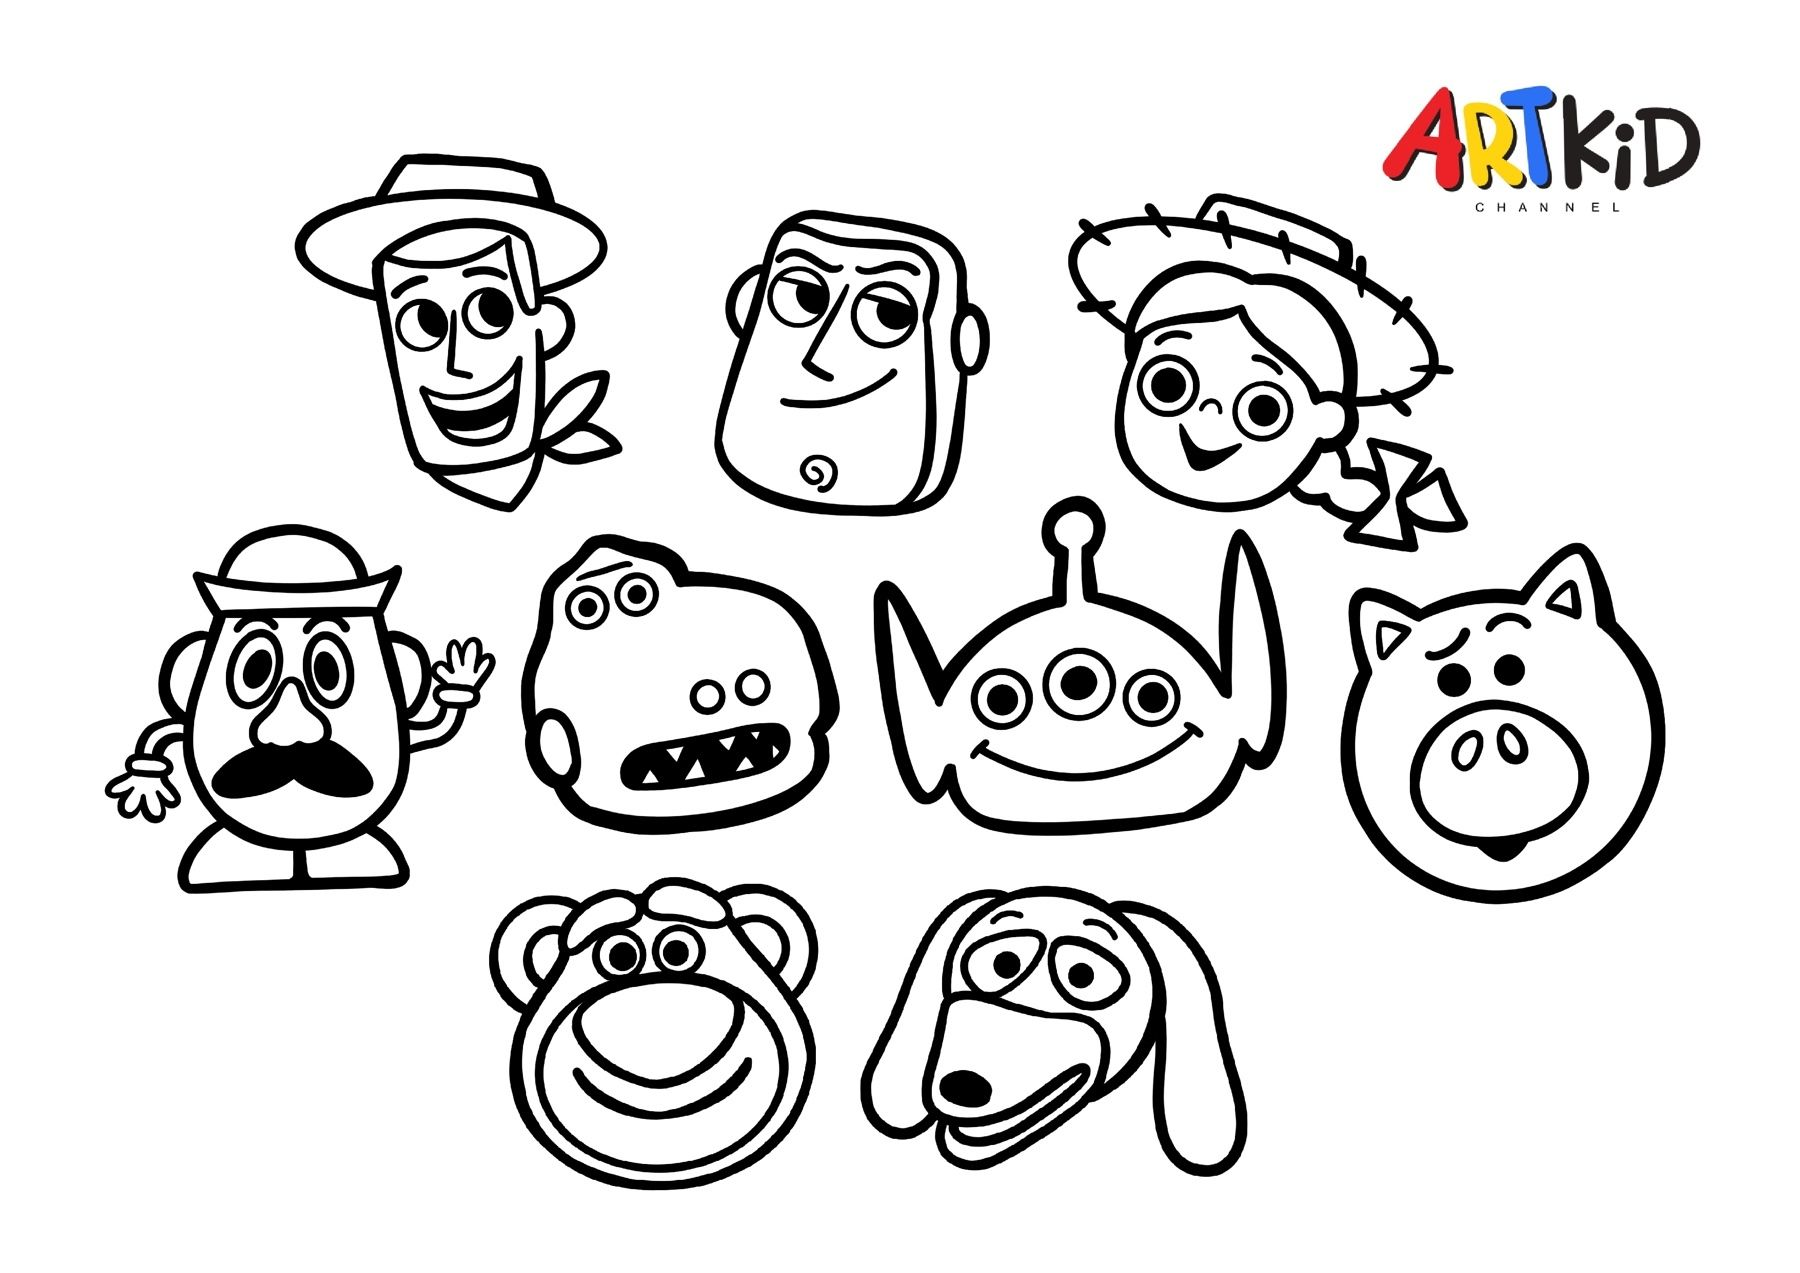 Woody And Friends Toy Story Drawing Free Printable Coloring Pages Oil Pastel Drawings Free Printable Coloring Pages Coloring Pages